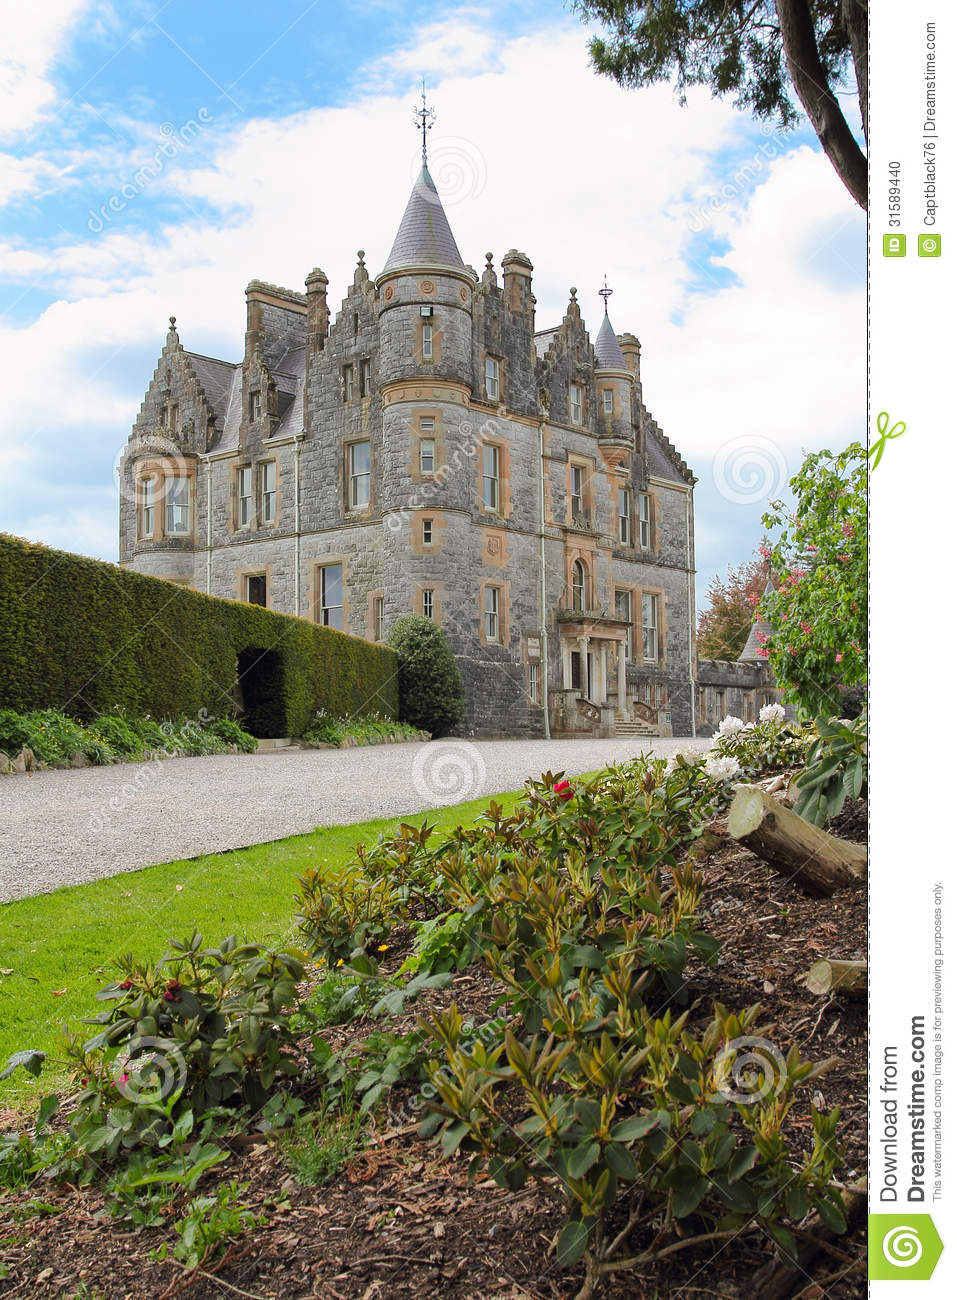 Blarney castle manor stock photo image 31589440 for The blarney house plan